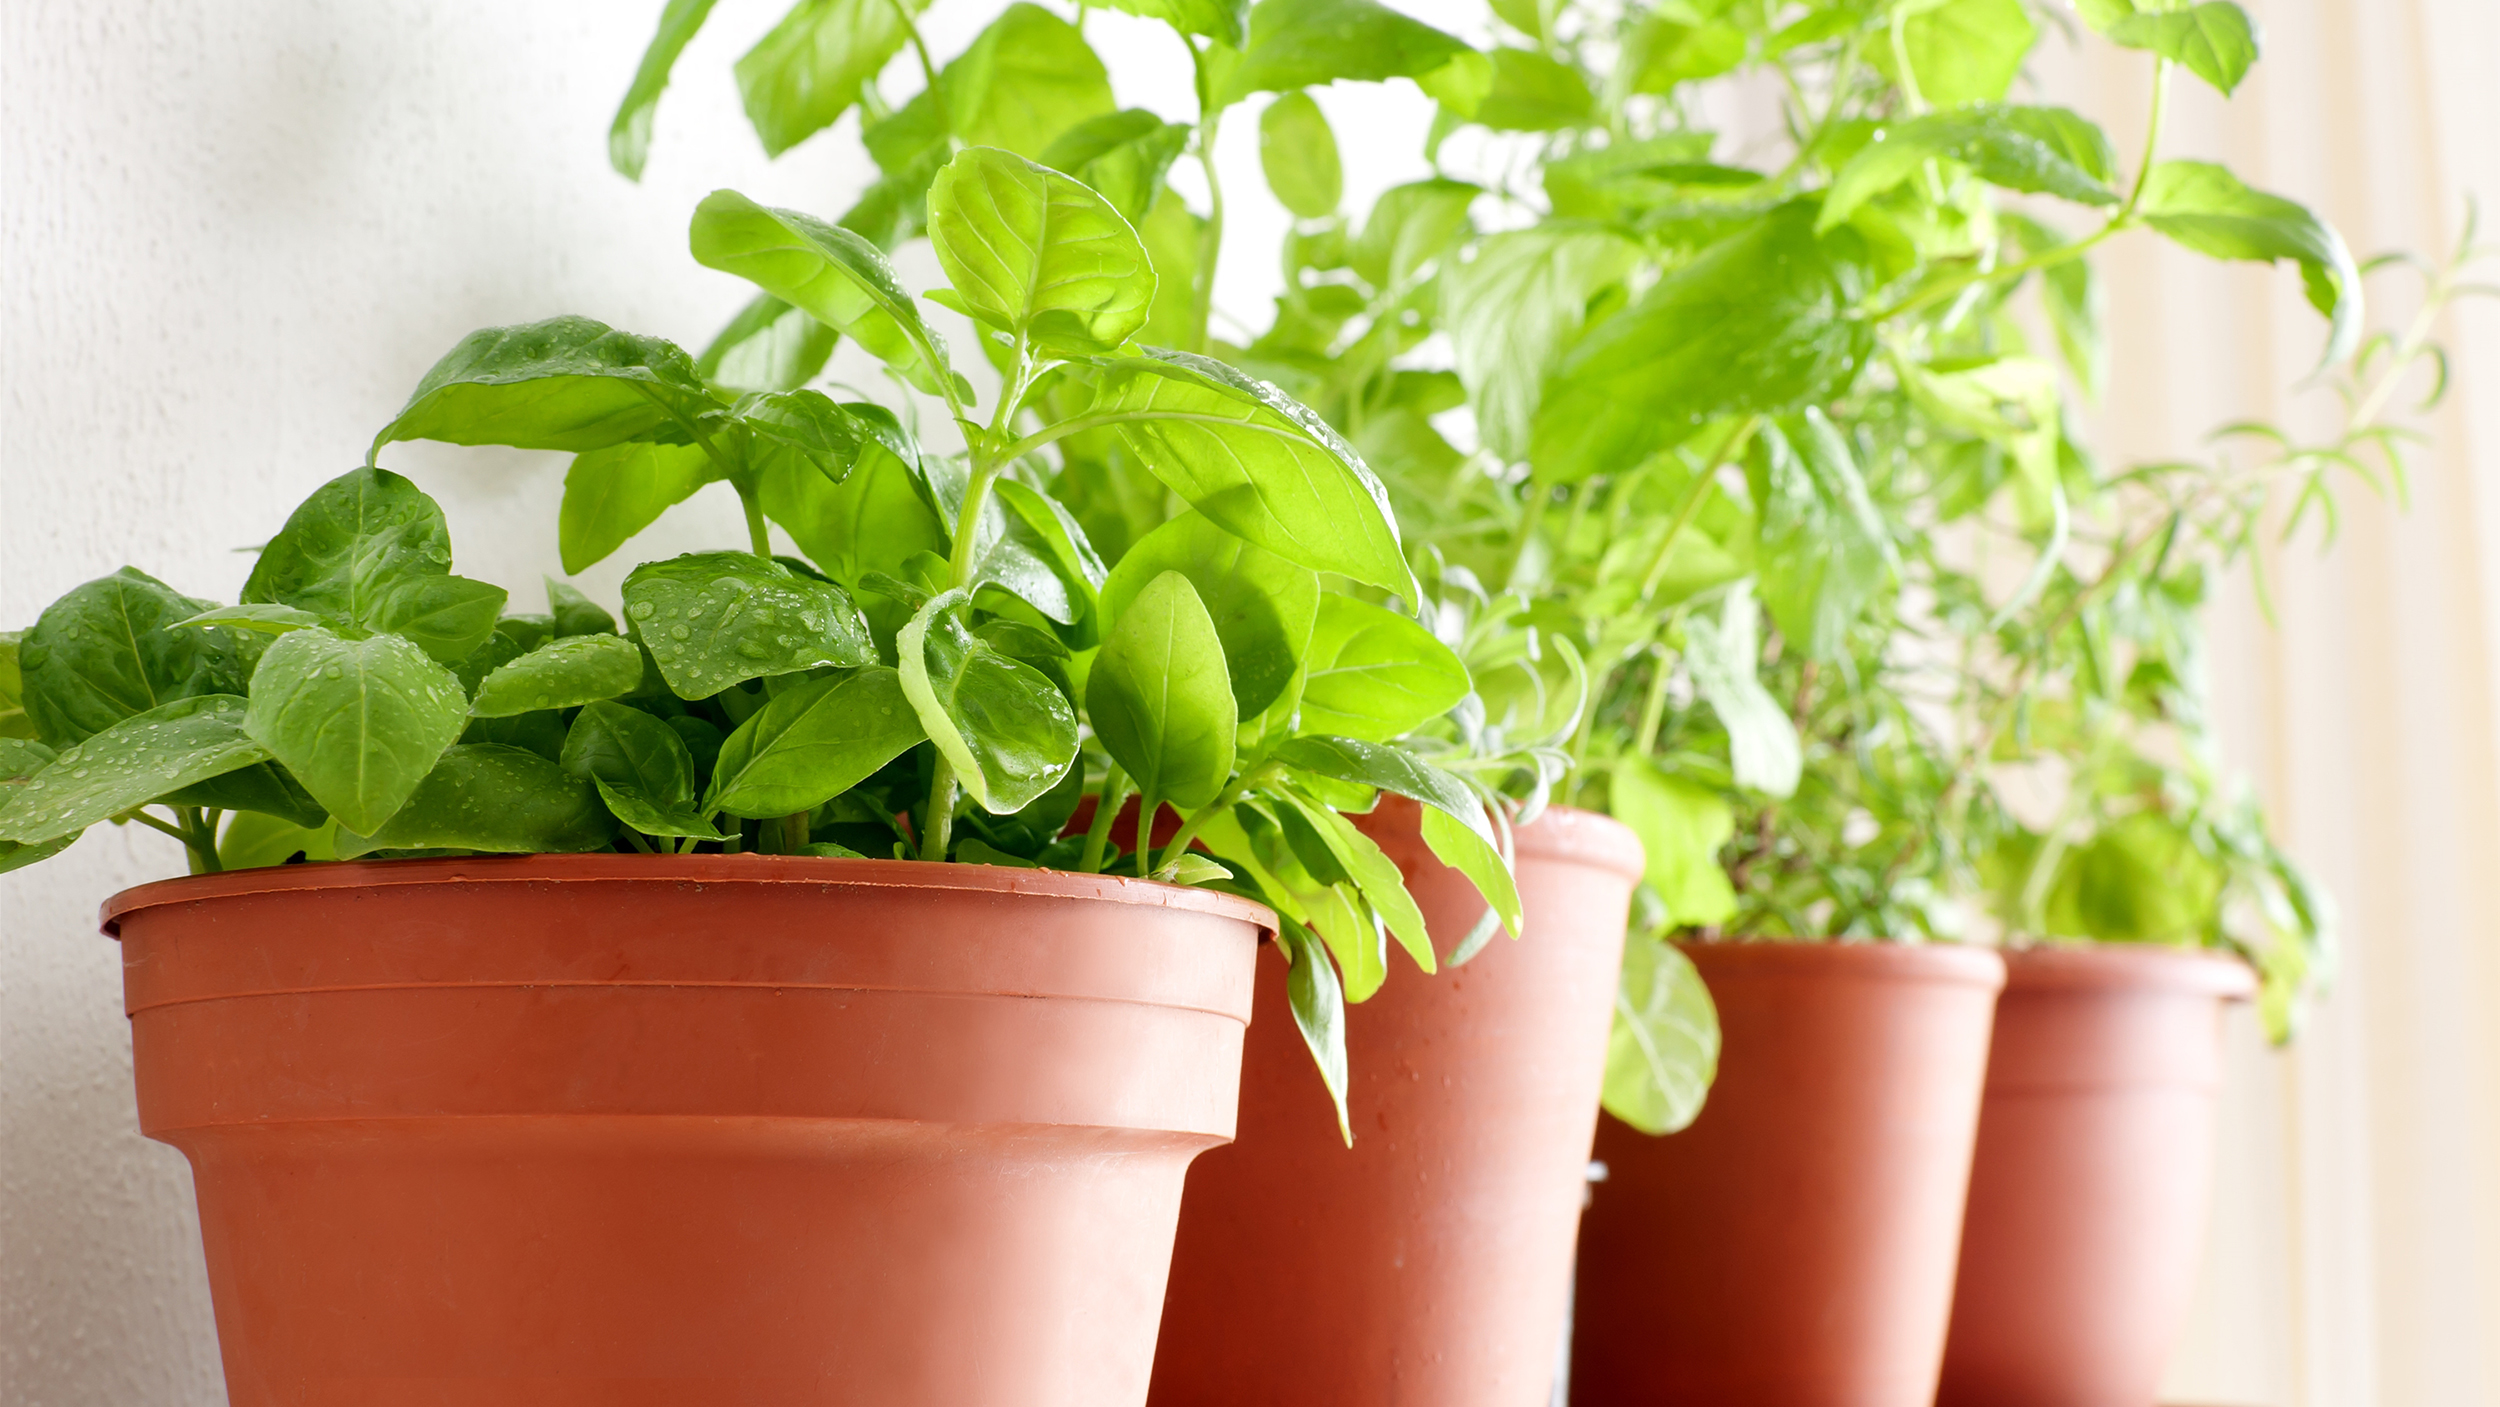 Herbs Pots Indoors How To Grow Herbs When To Water How Much Sunlight More